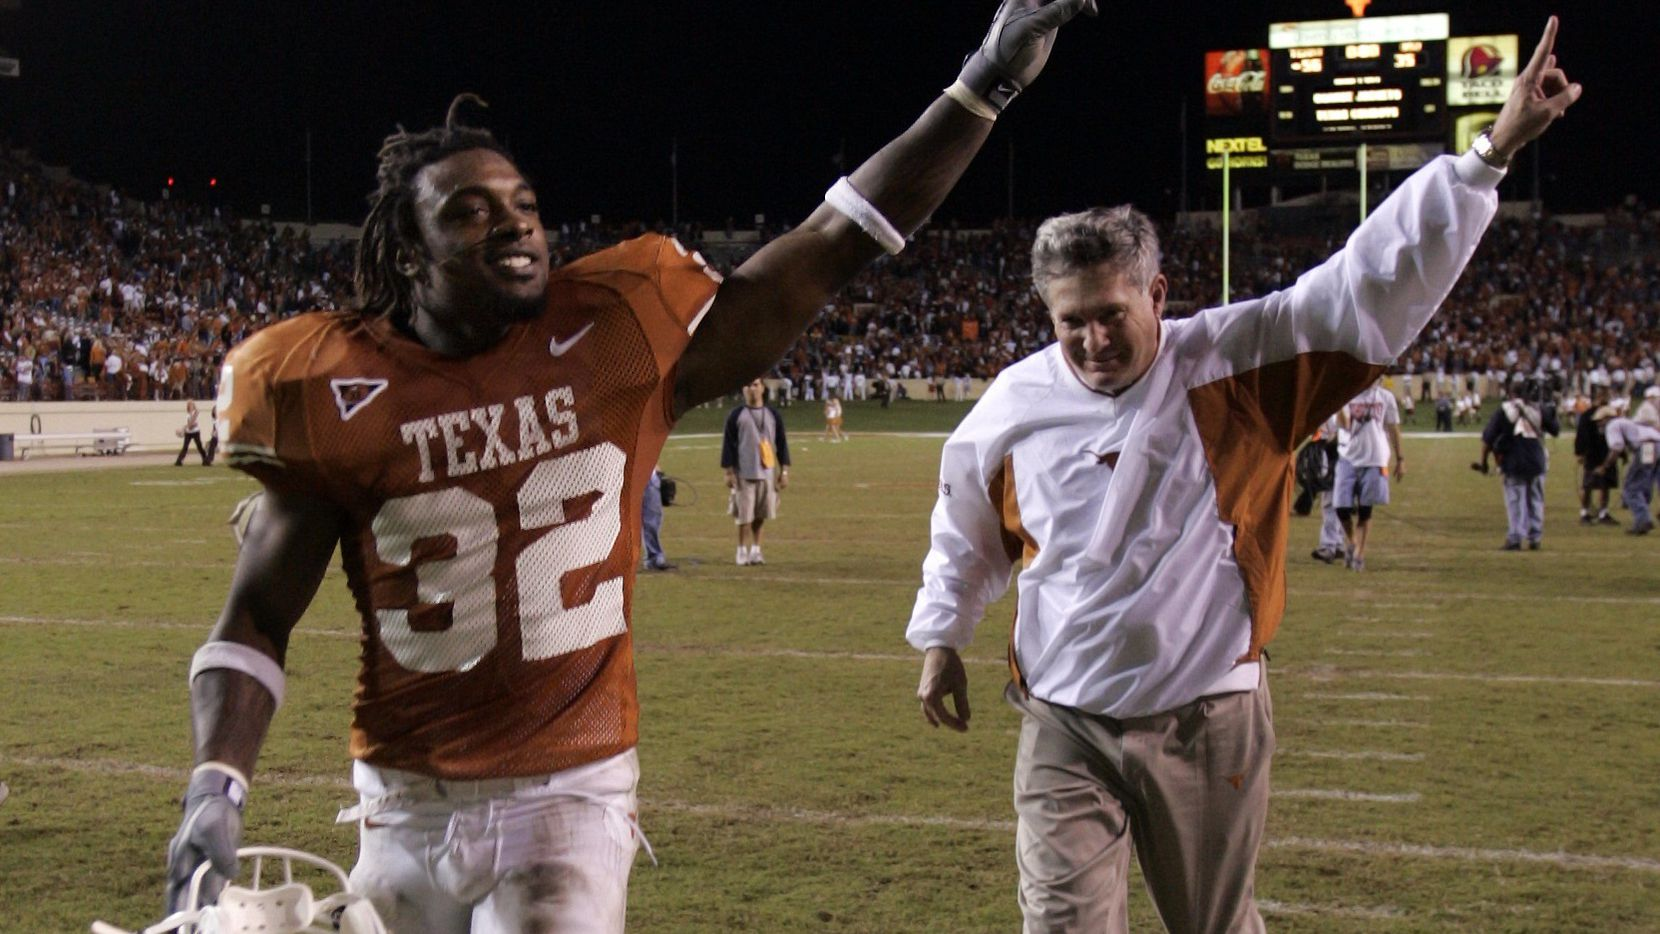 11/6/04 - Austin, Texas -  Texas running back Cedric Benson (32) and head coach Mack Brown salute Longhorn fans after the biggest comeback in Texas history, beating Oklahoma State University 56-35 at Royal-Memorial Stadium.